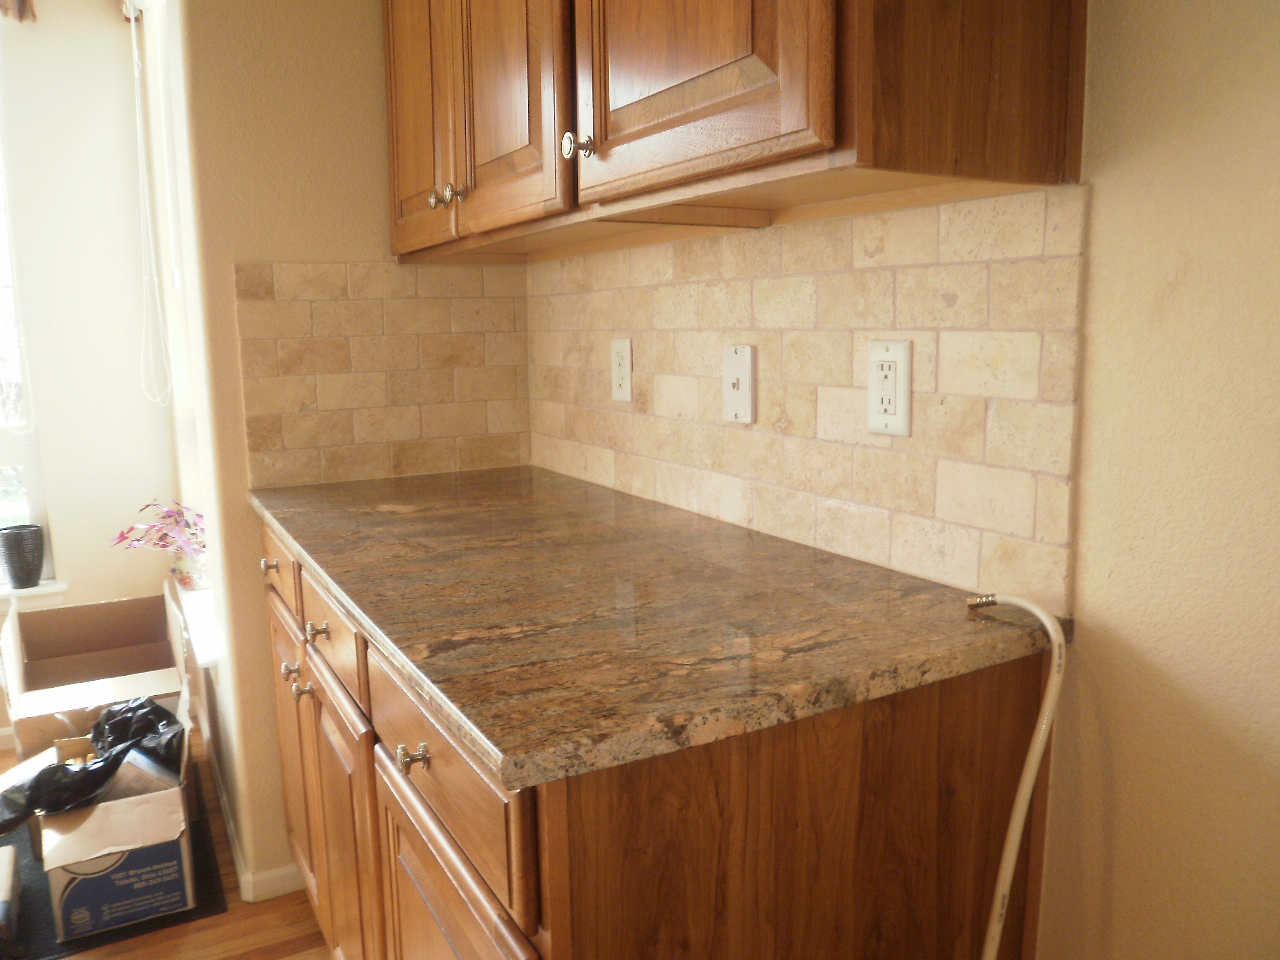 Integrity Installations A Division Of Front Range Backsplash 3x6 Tumbled Ivory